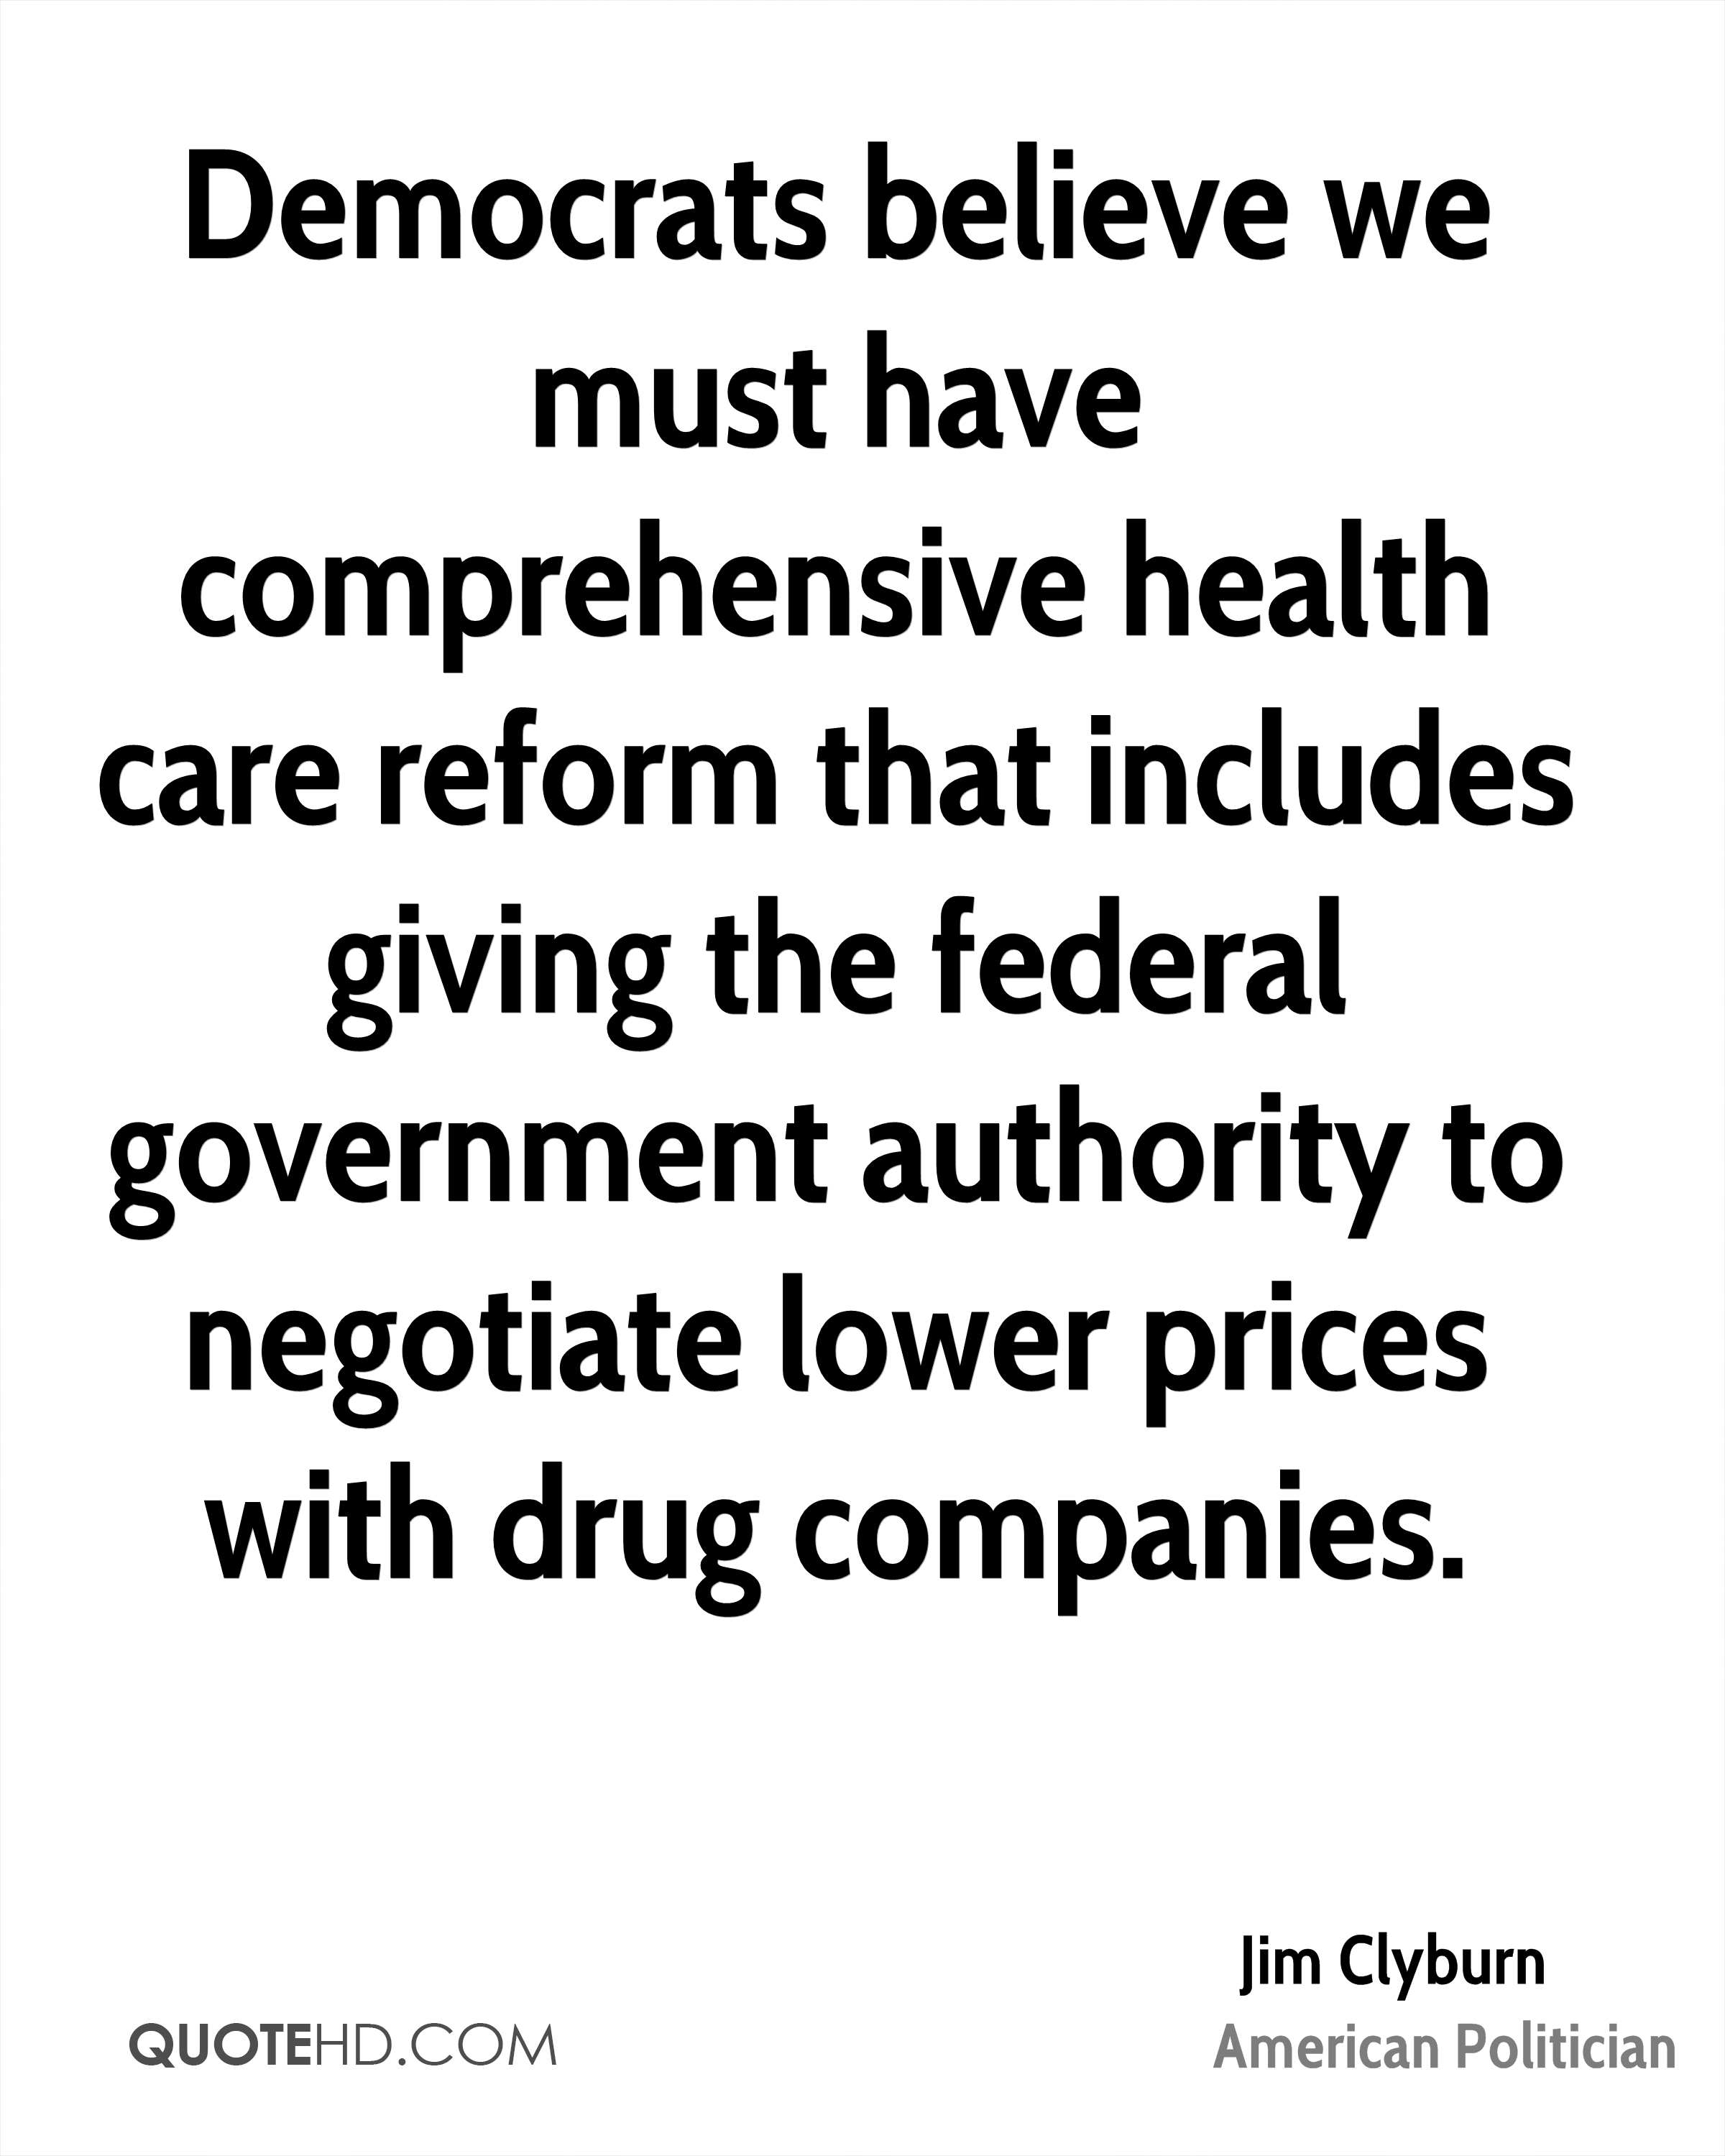 Democrats believe we must have comprehensive health care reform that includes giving the federal government authority to negotiate lower prices with drug companies.